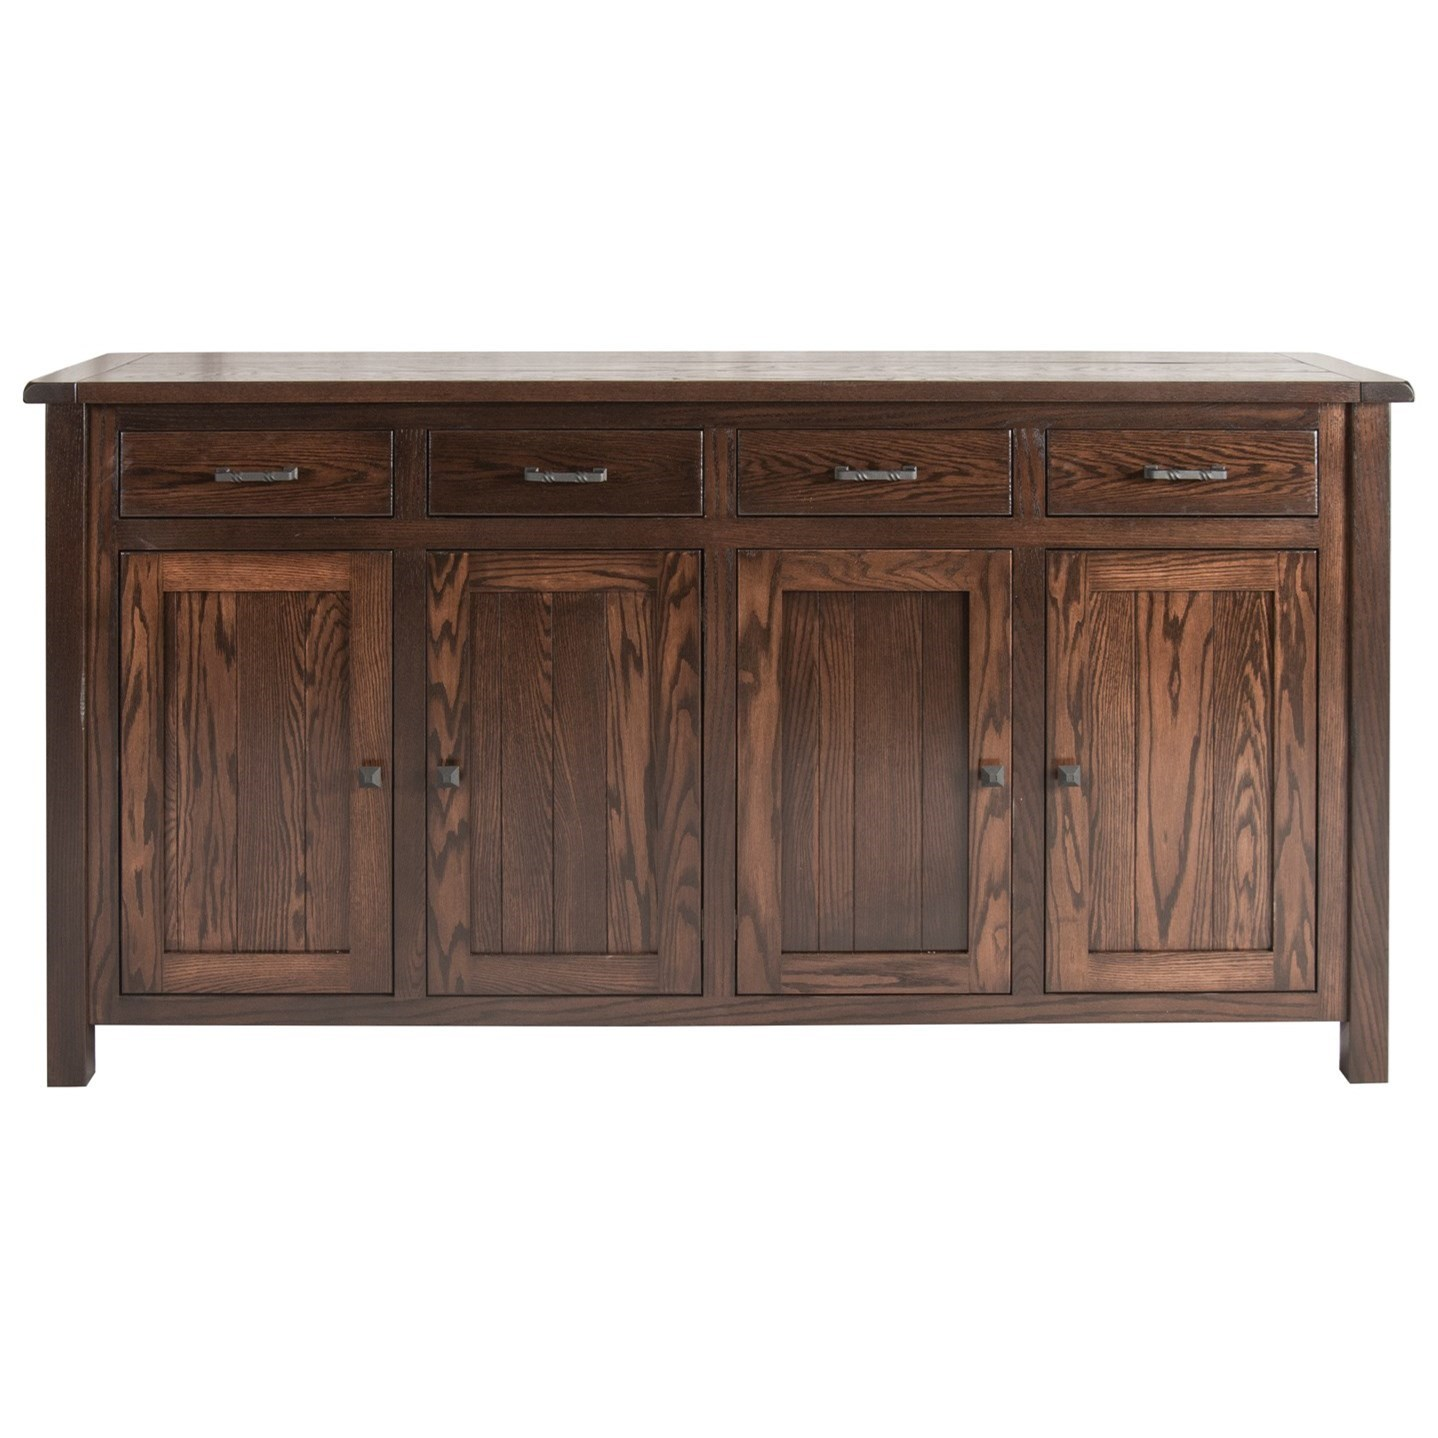 Adele Buffet with 4 Doors by Meadow Lane Wood at Saugerties Furniture Mart